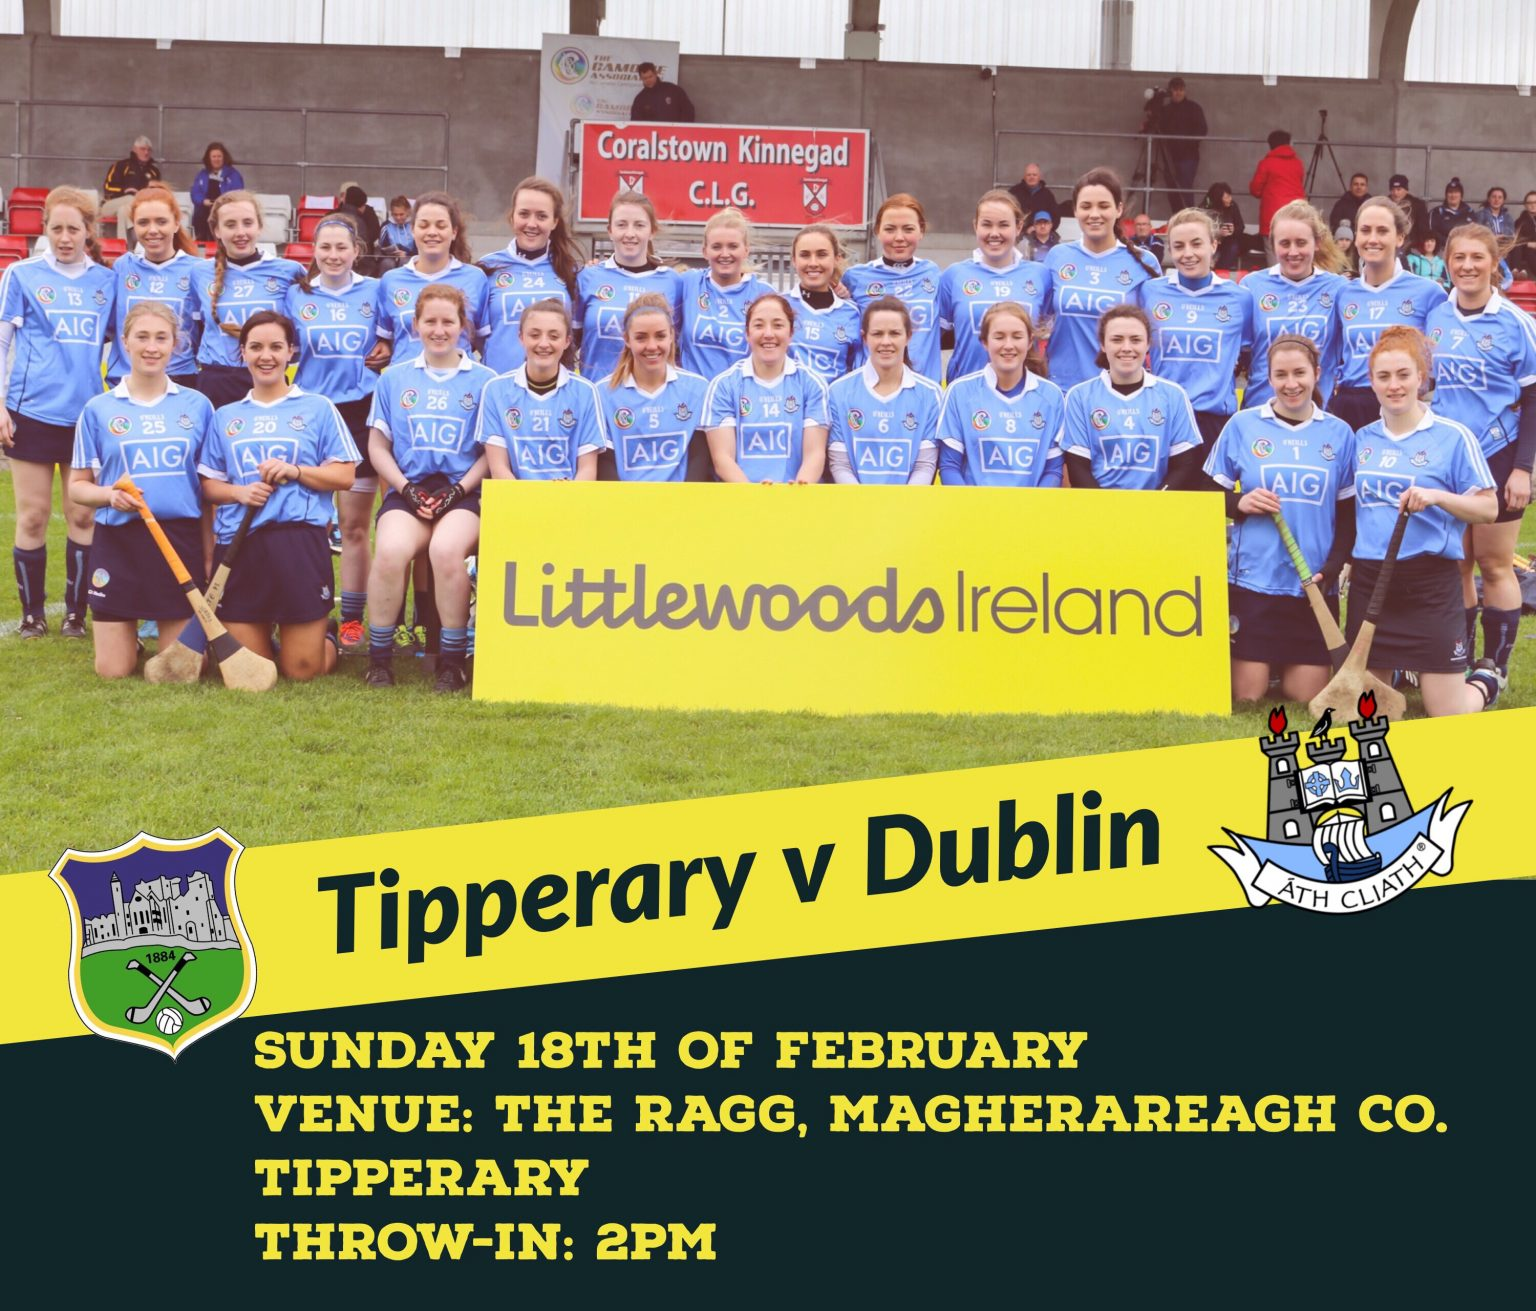 The Dublin Premier Junior Camogie Squad Begin Their Division 2 League Campaign This Sunday Away To Tipperary.